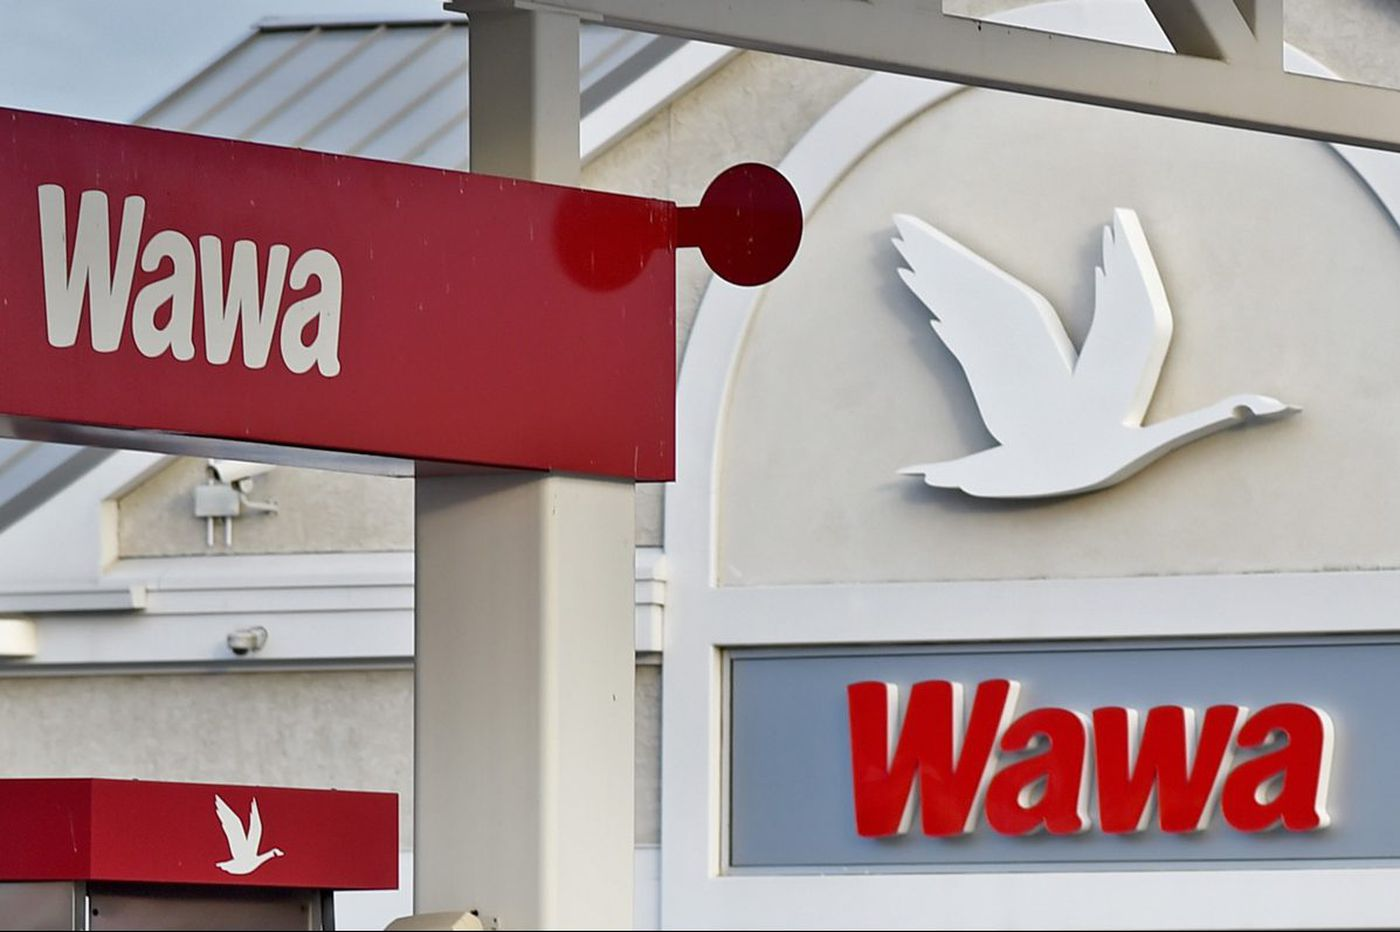 Wawa arrives in Miami, where reactions range from 'is nothing sacred' to the 'fever is real'